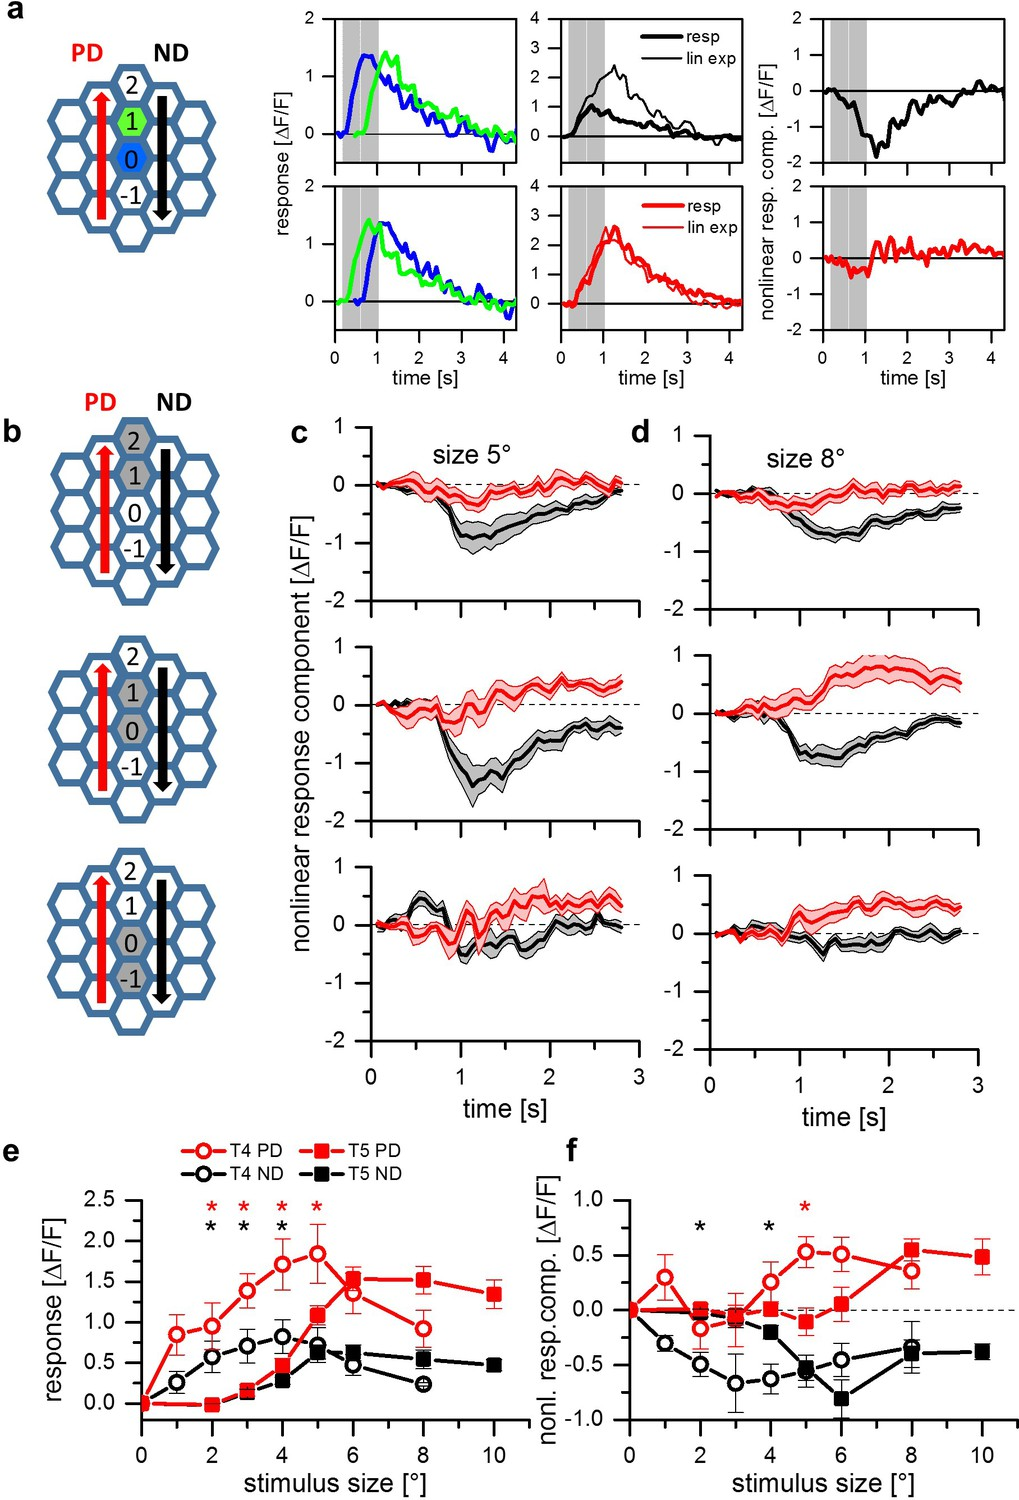 A Common Directional Tuning Mechanism Of Drosophila Motion Sensing 26 Ring Counter Logic Diagram B Timing Apparent Stimuli Between Adjacent Cartridges